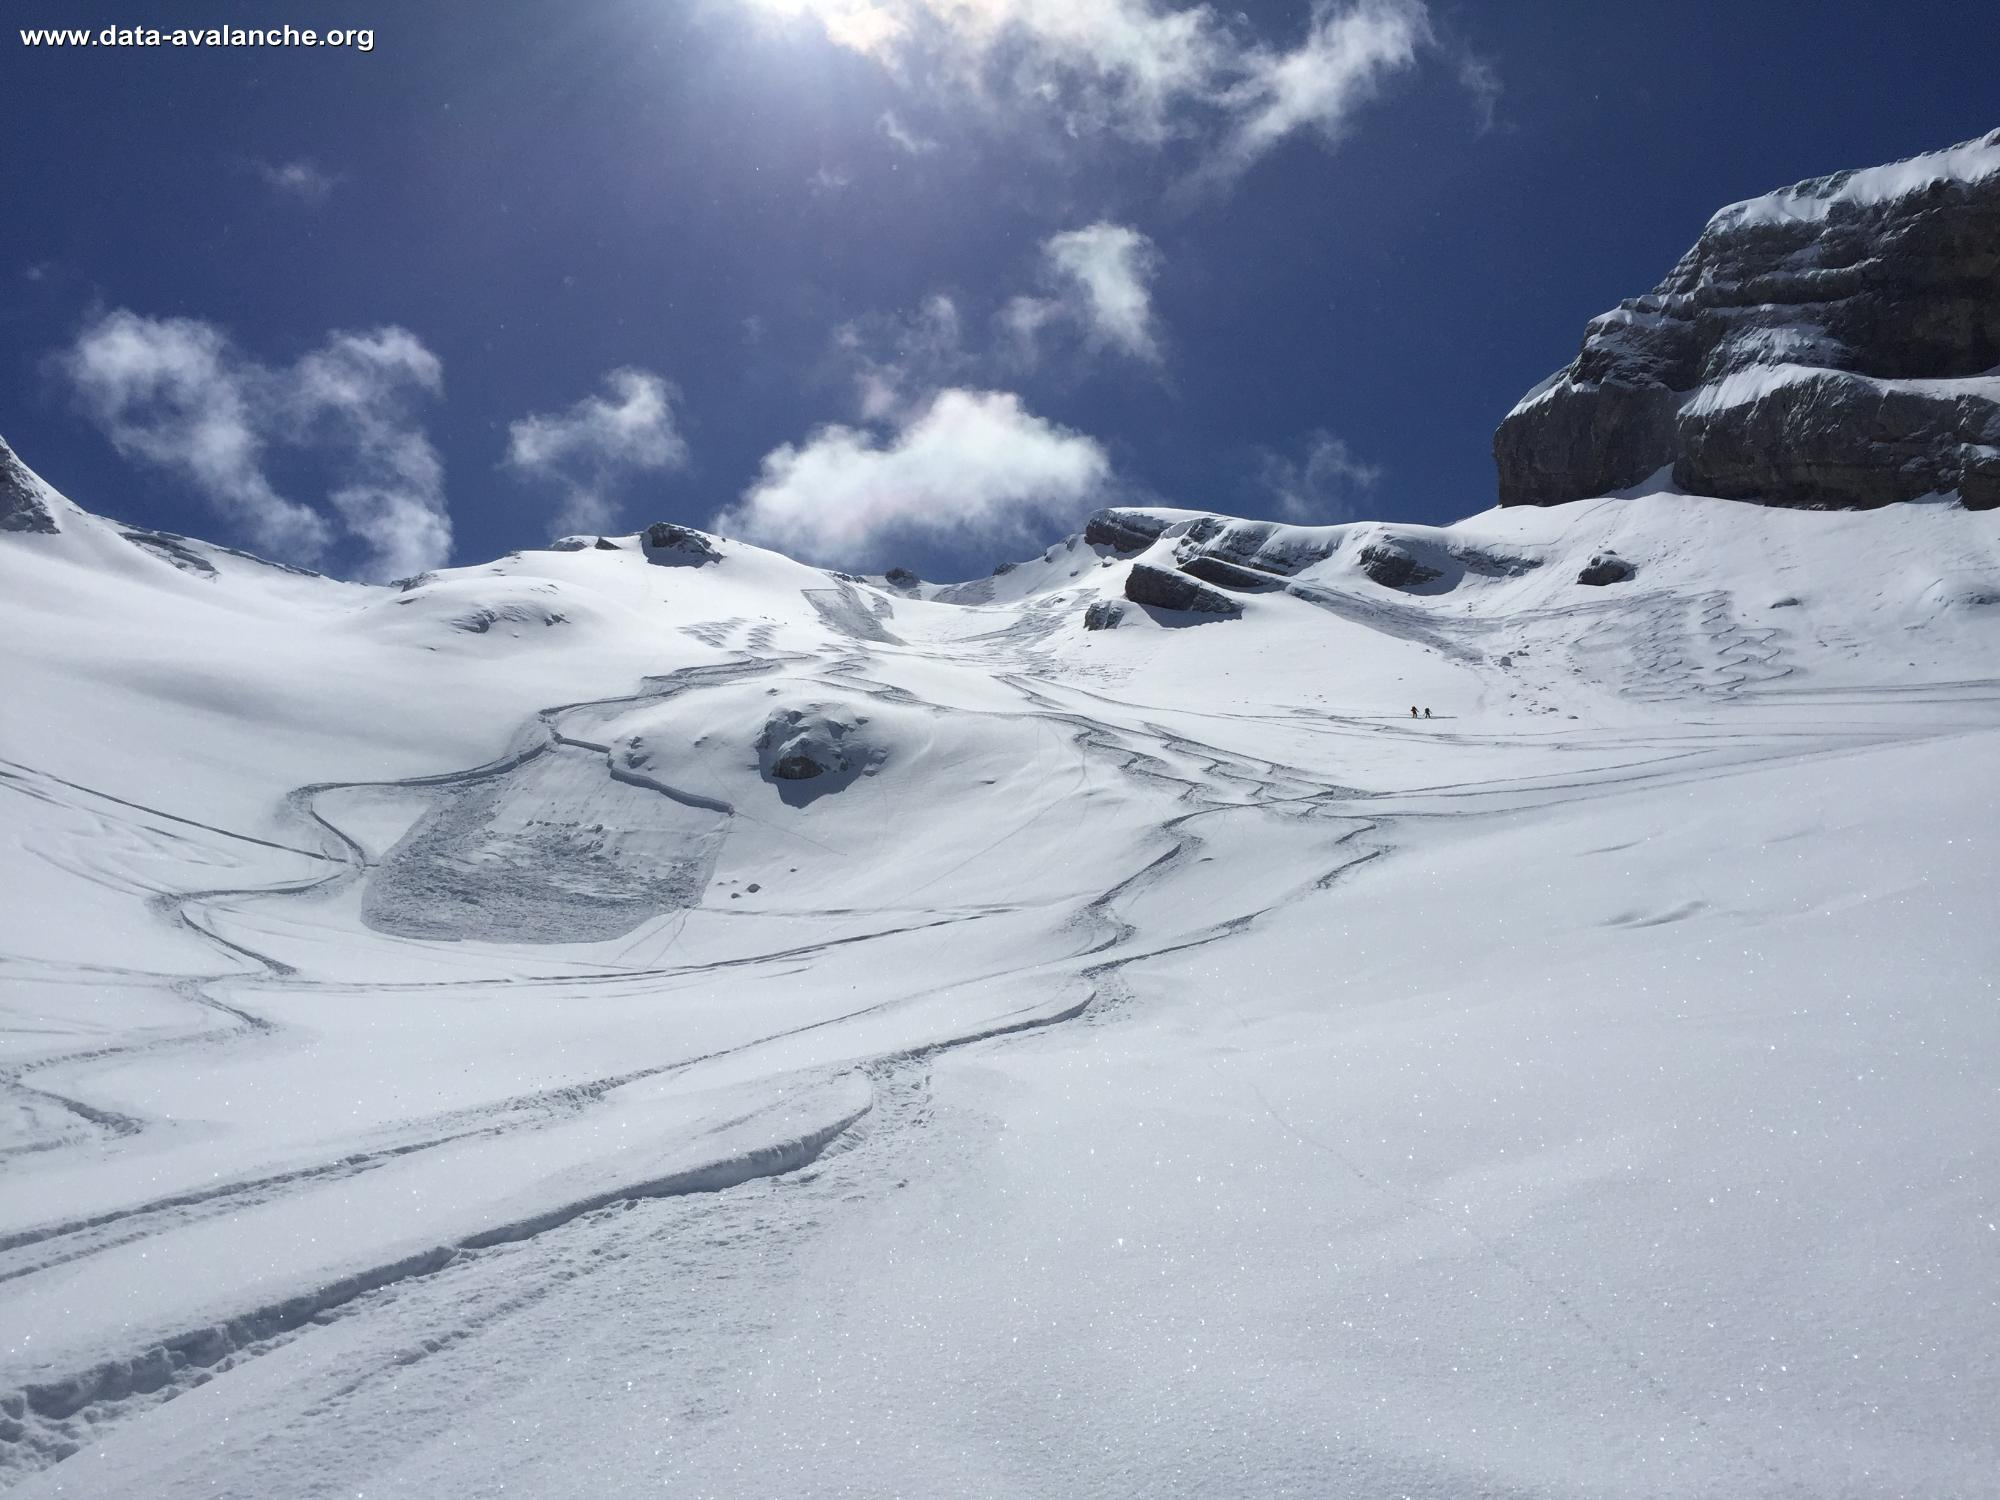 Avalanche Aravis, secteur Tête Pelouse, Combe du Grand Crêt - Photo 1